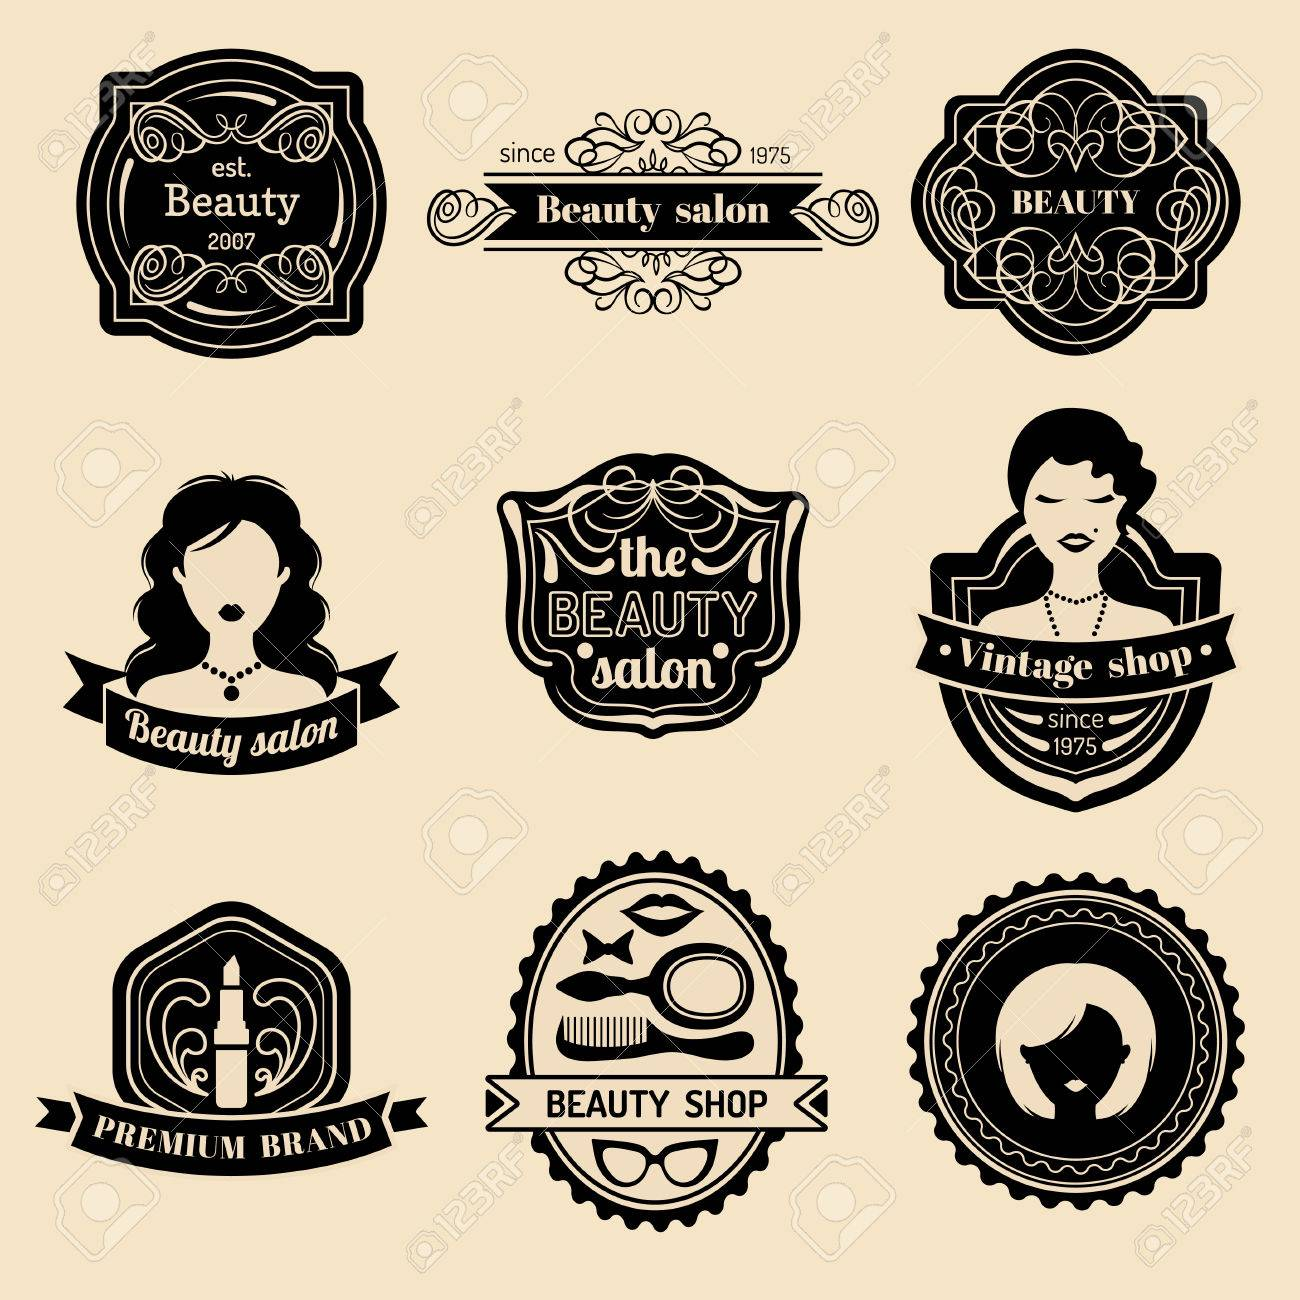 Vector Set Of Hipster Woman Logo Beauty Salon Or Vintage Shop